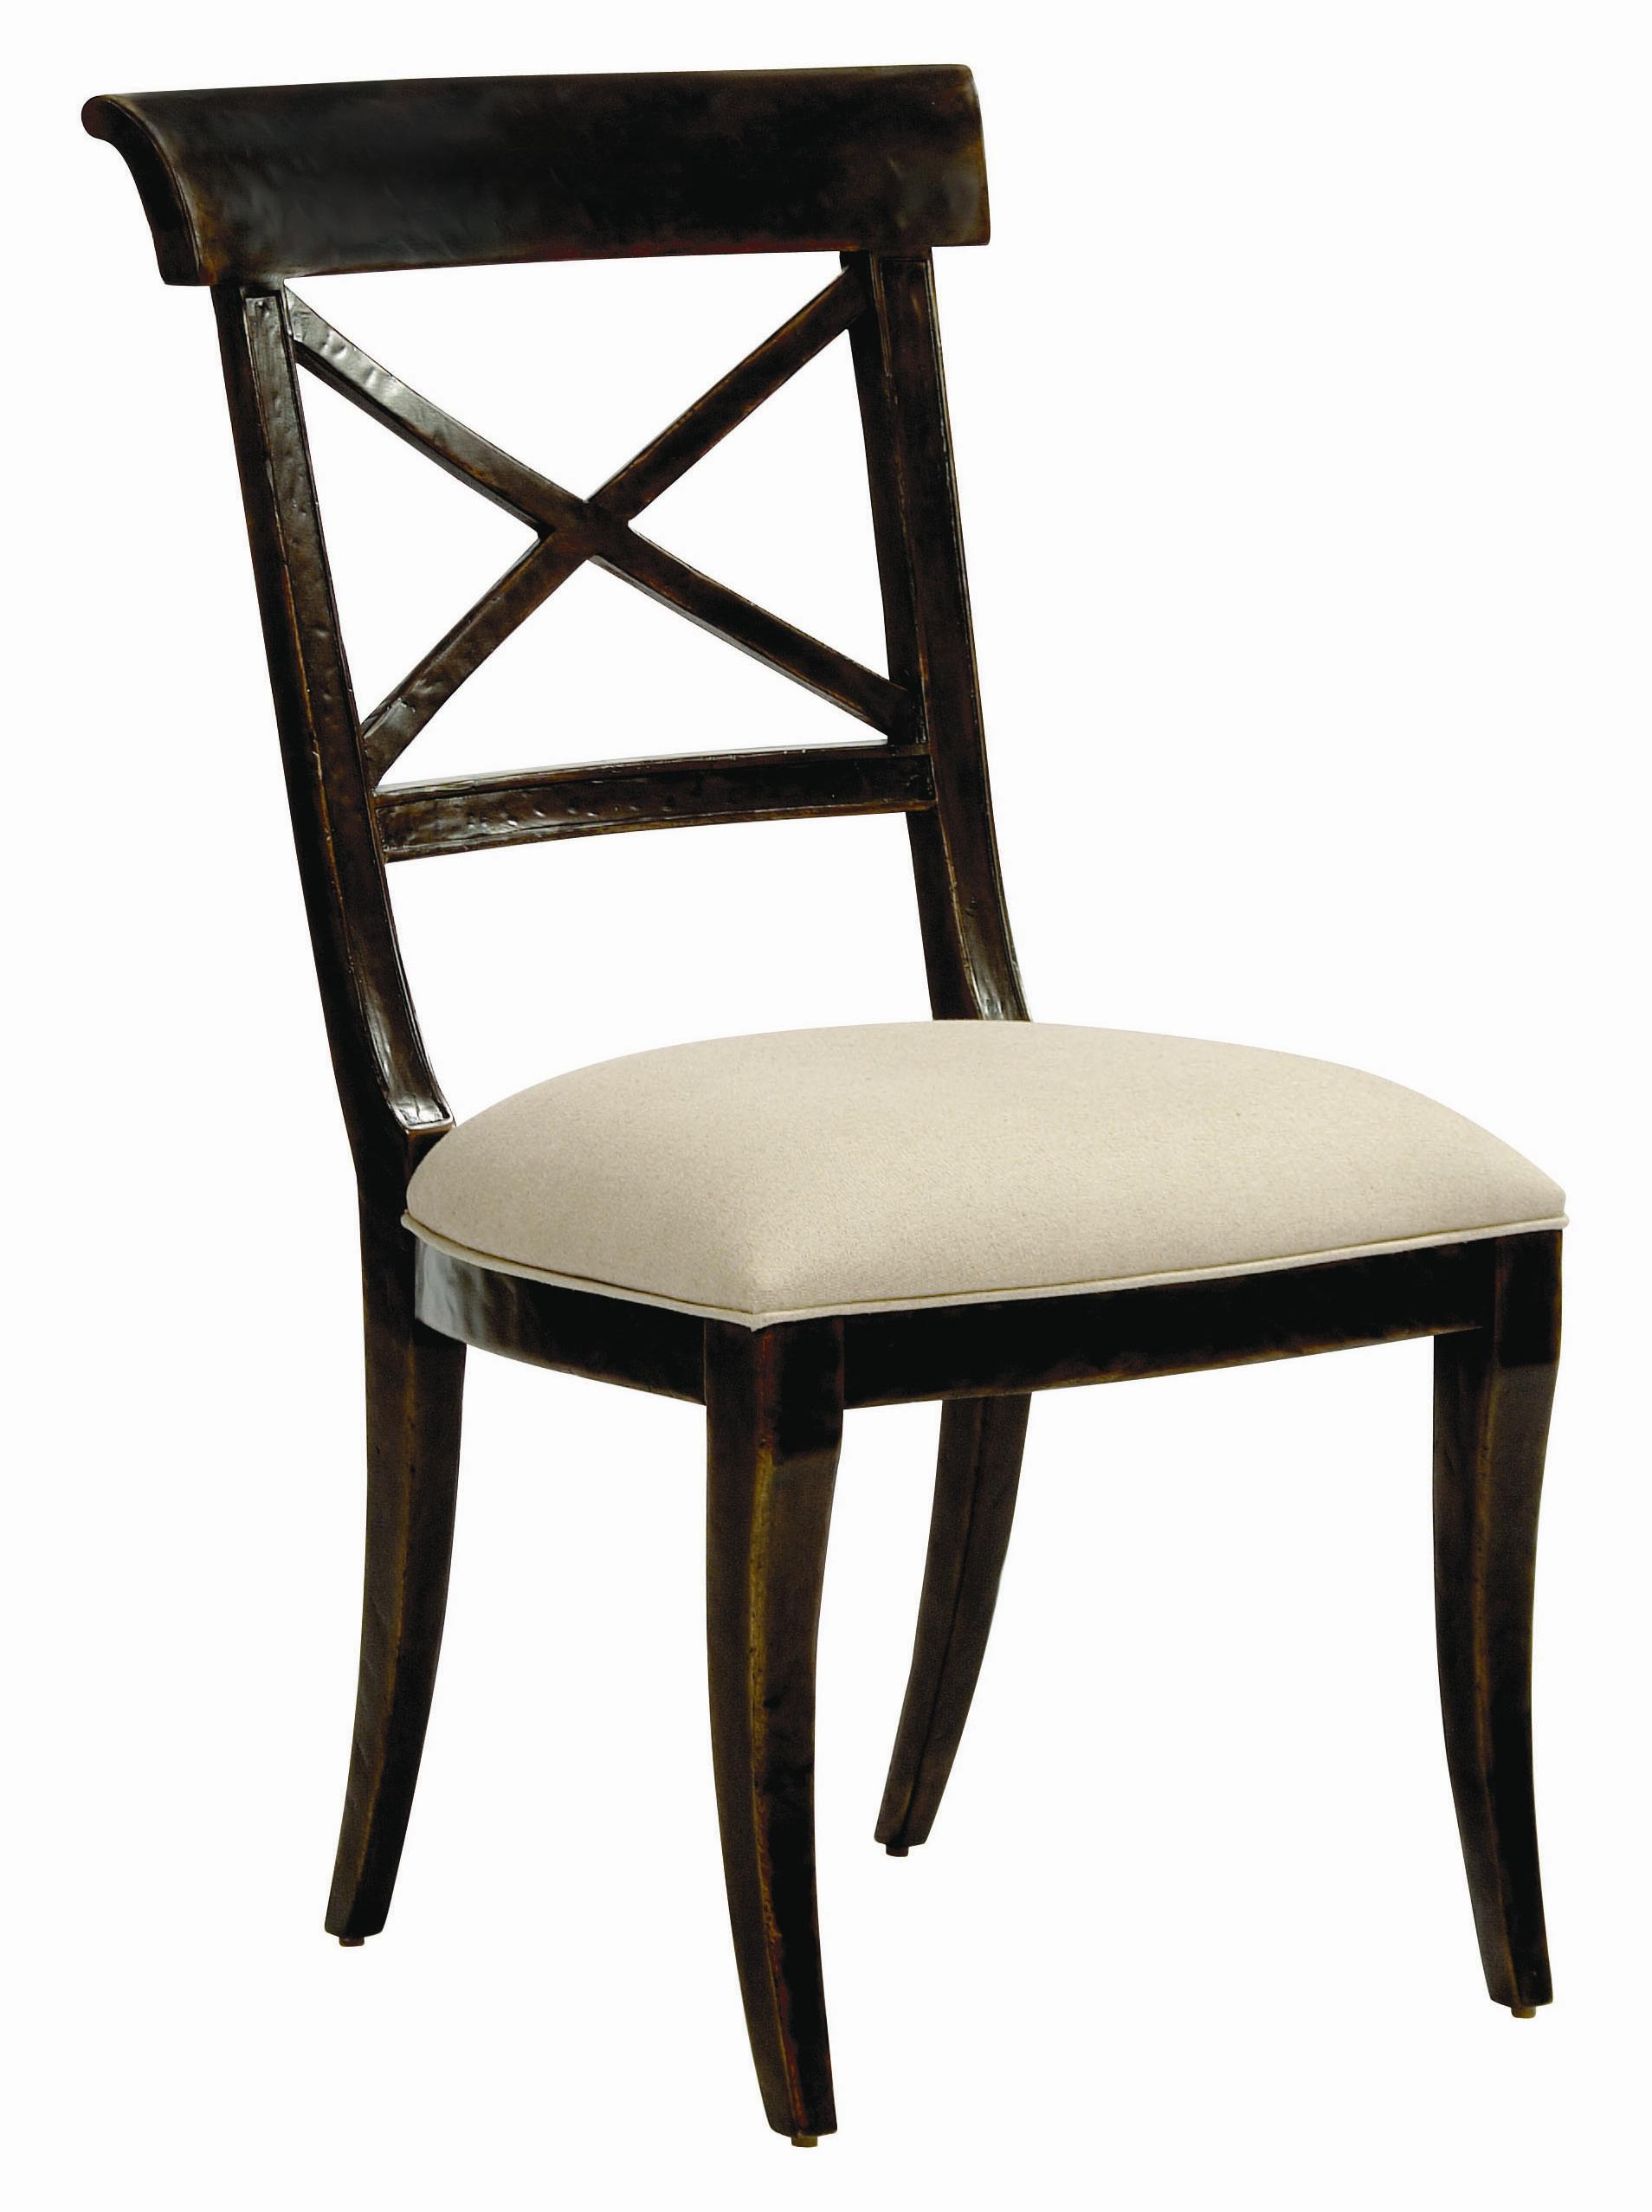 Bernhardt vintage patina dining room side chair with